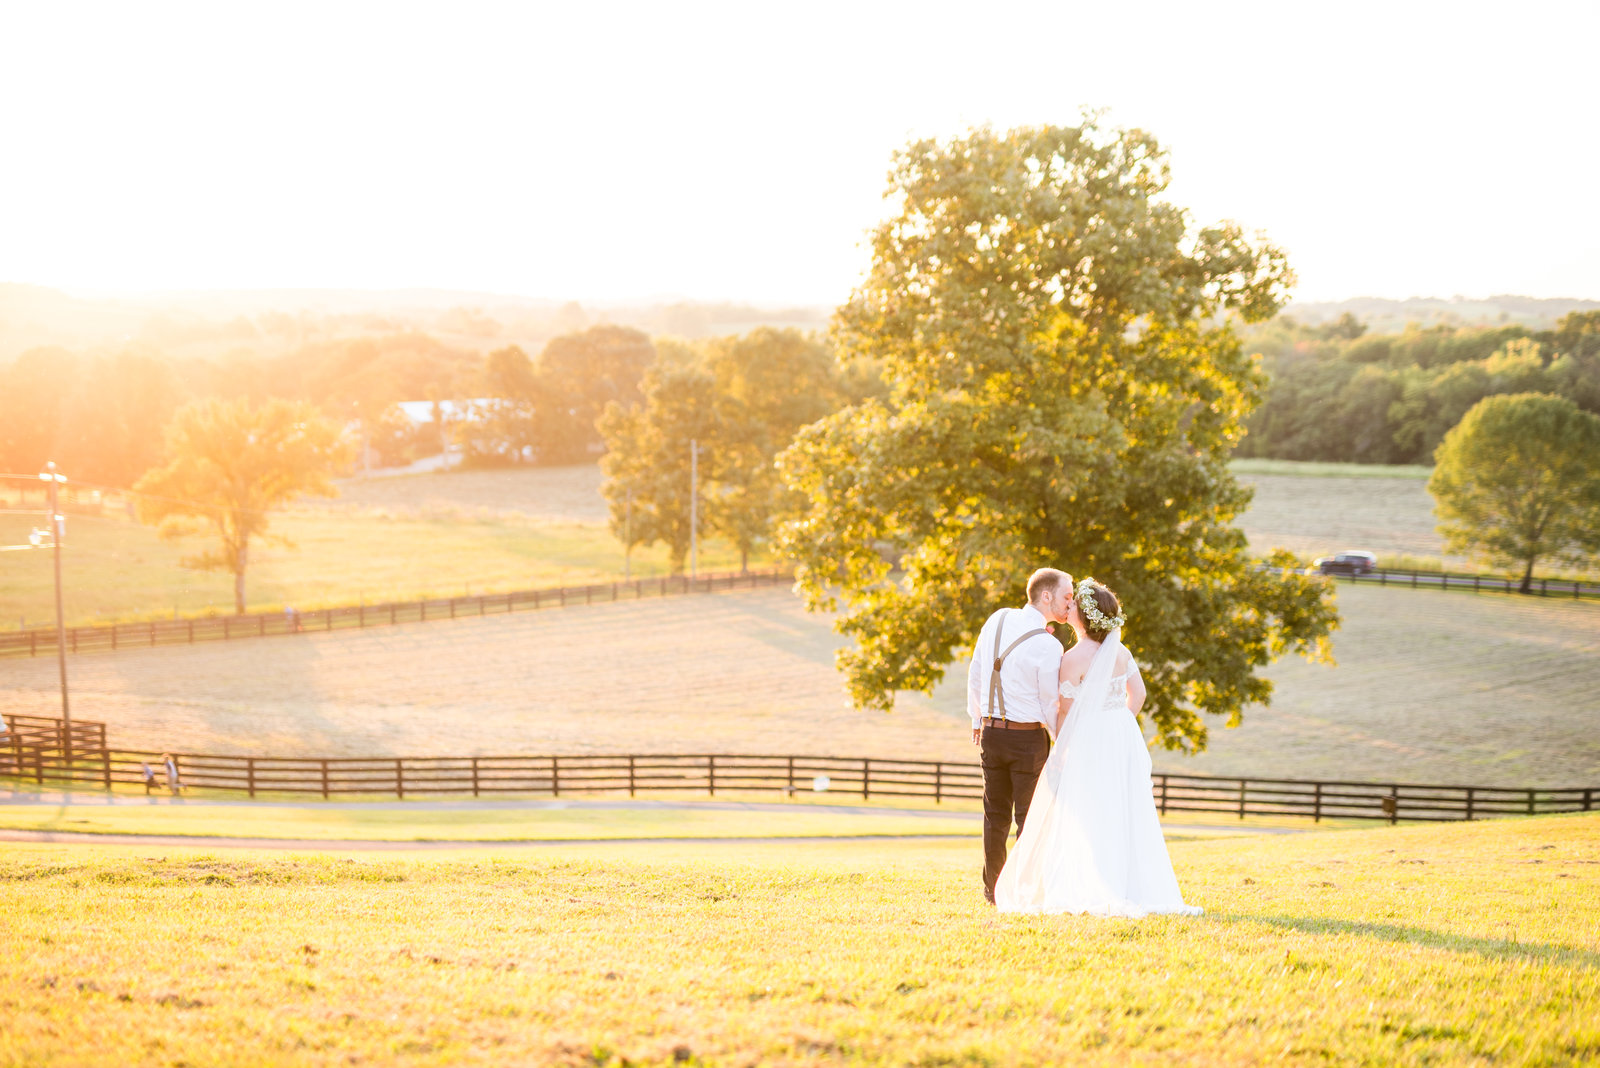 Groom-kissing-bride-on-forhead-during-golden-hour-at-their-fall-farm-wedding-in-dayton-ohio